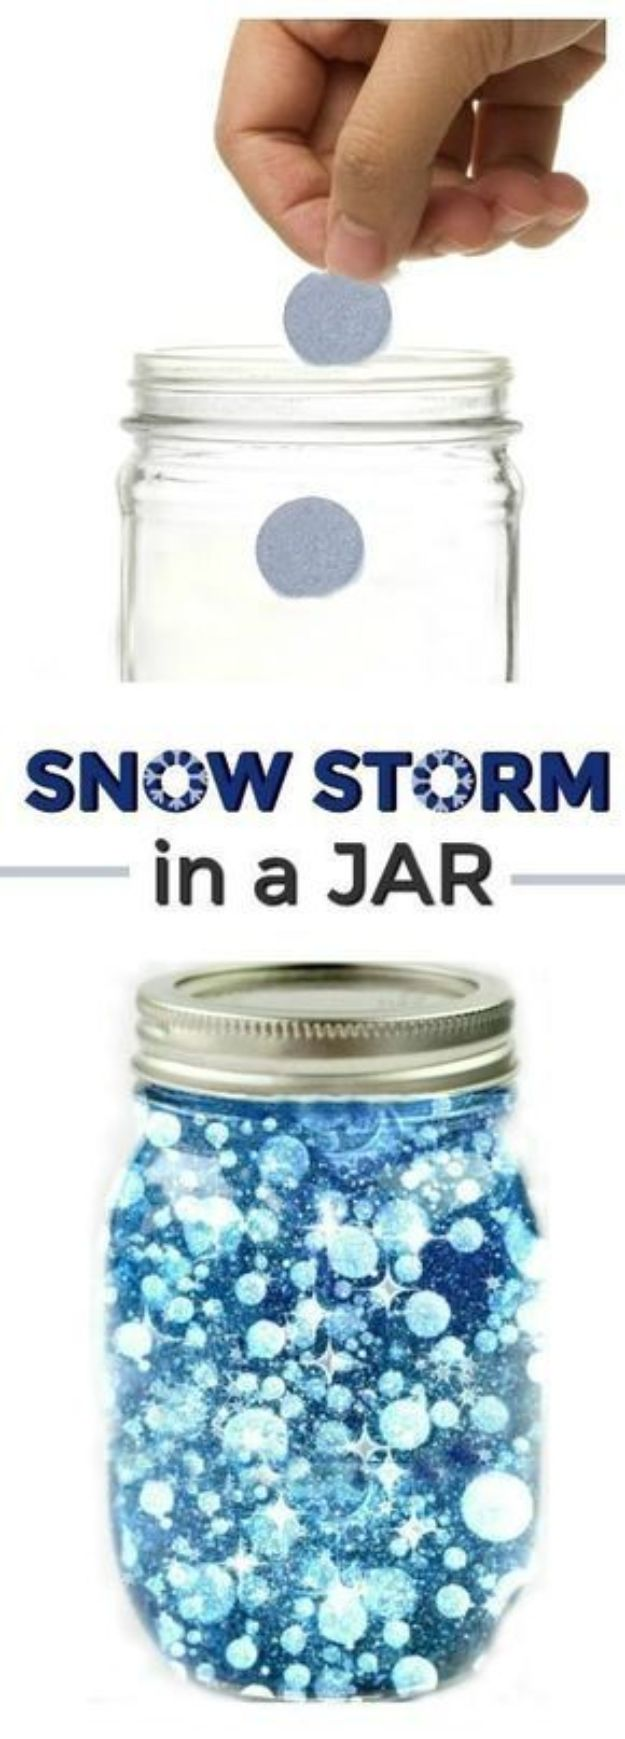 Winter Crafts for Toddlers and Kids - Snow Storm In A Jar - Easy Art Projects and Craft Ideas for 2 Year Olds, Preschool Age Children - Simple Indoor Activities, Things To Make At Home in Wintertime - Snow, Snowflake and Icicle, Snowmen - Classroom Art Projects - Busy Bags and Quick and Easy Gifts - Cheap Kid Crafts From The Dollar Store and Dollar Tree http://diyjoy.com/winter-crafts-for-kids